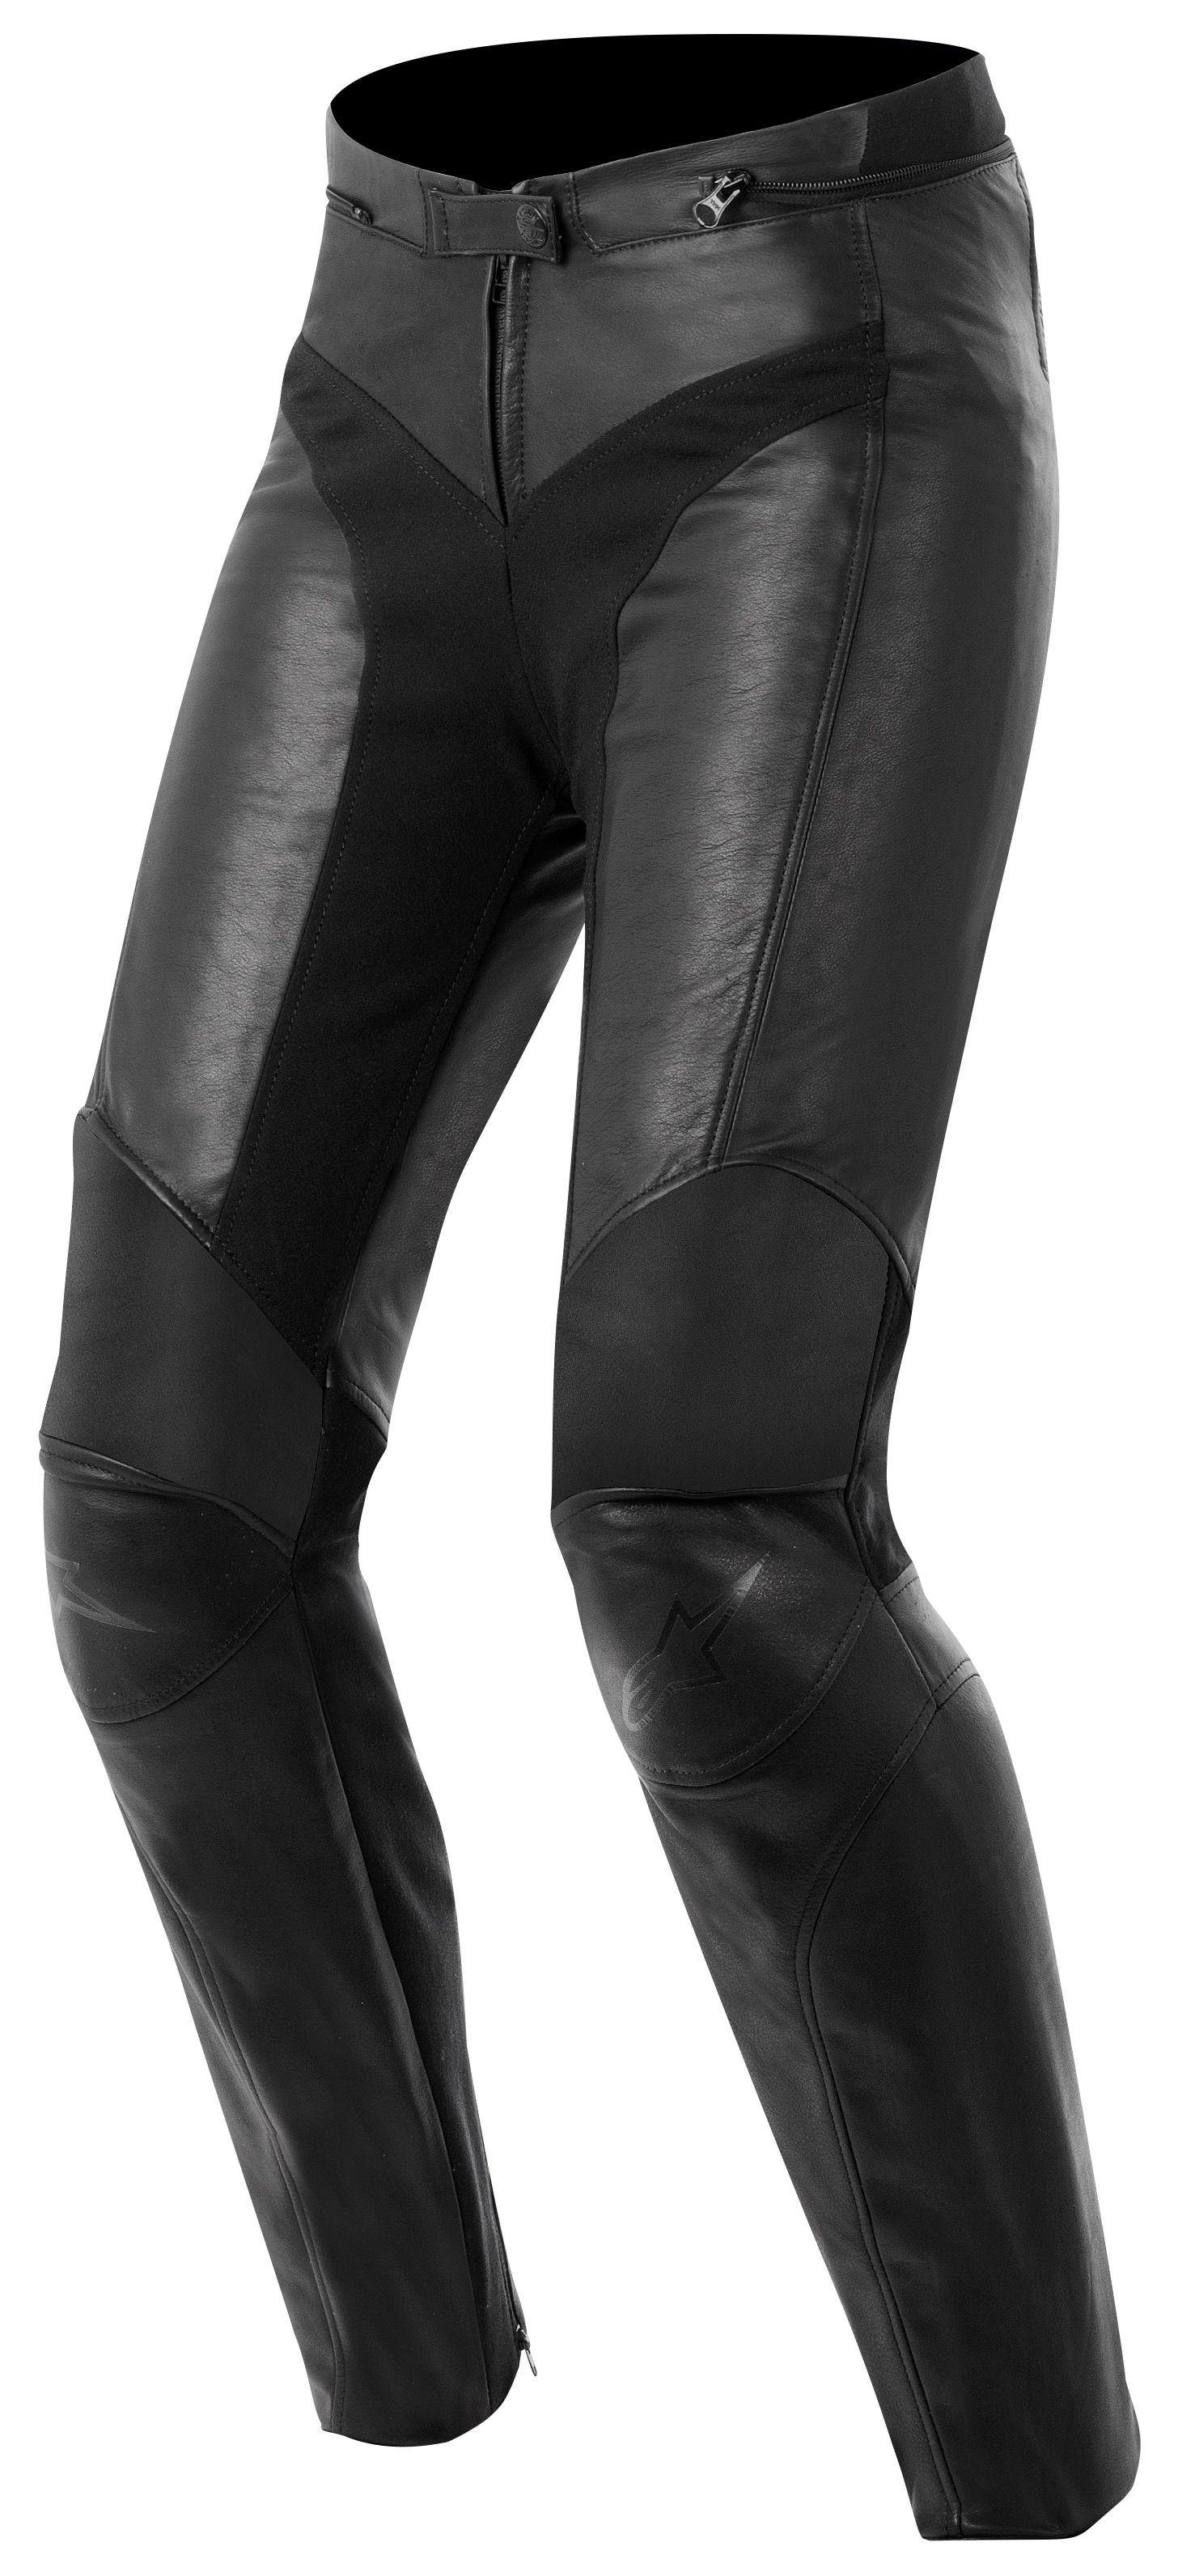 Home > Women > Chaps & Pants > Women's Leather Pants We have an Exclusive collection of genuine leather pants for women featuring a wide varietyof styles that .